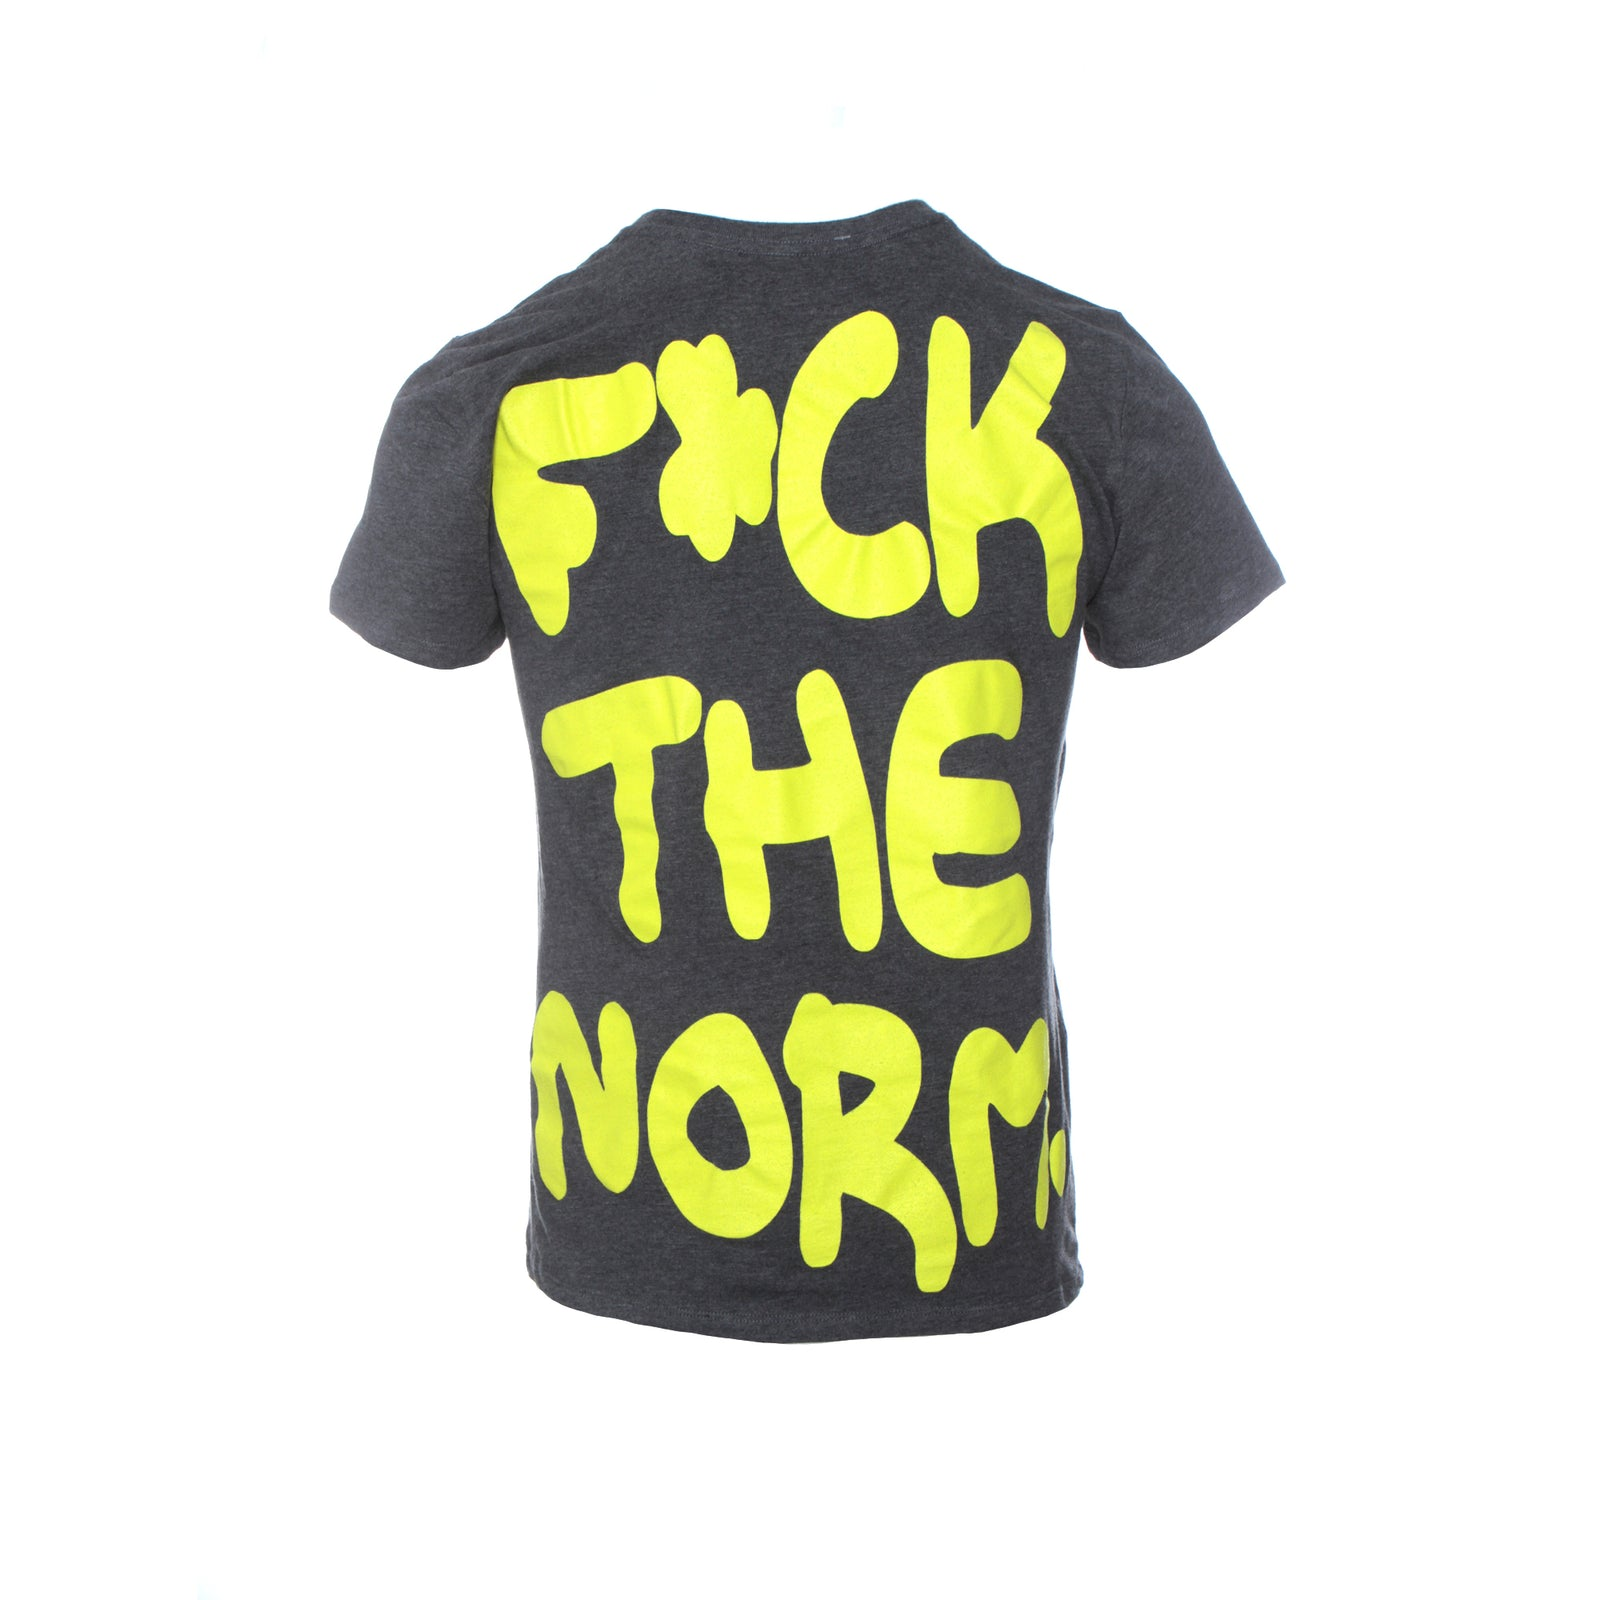 Fashion Geek F**k The Norm Men's SS T-Shirt Dark Grey Neon Yellow